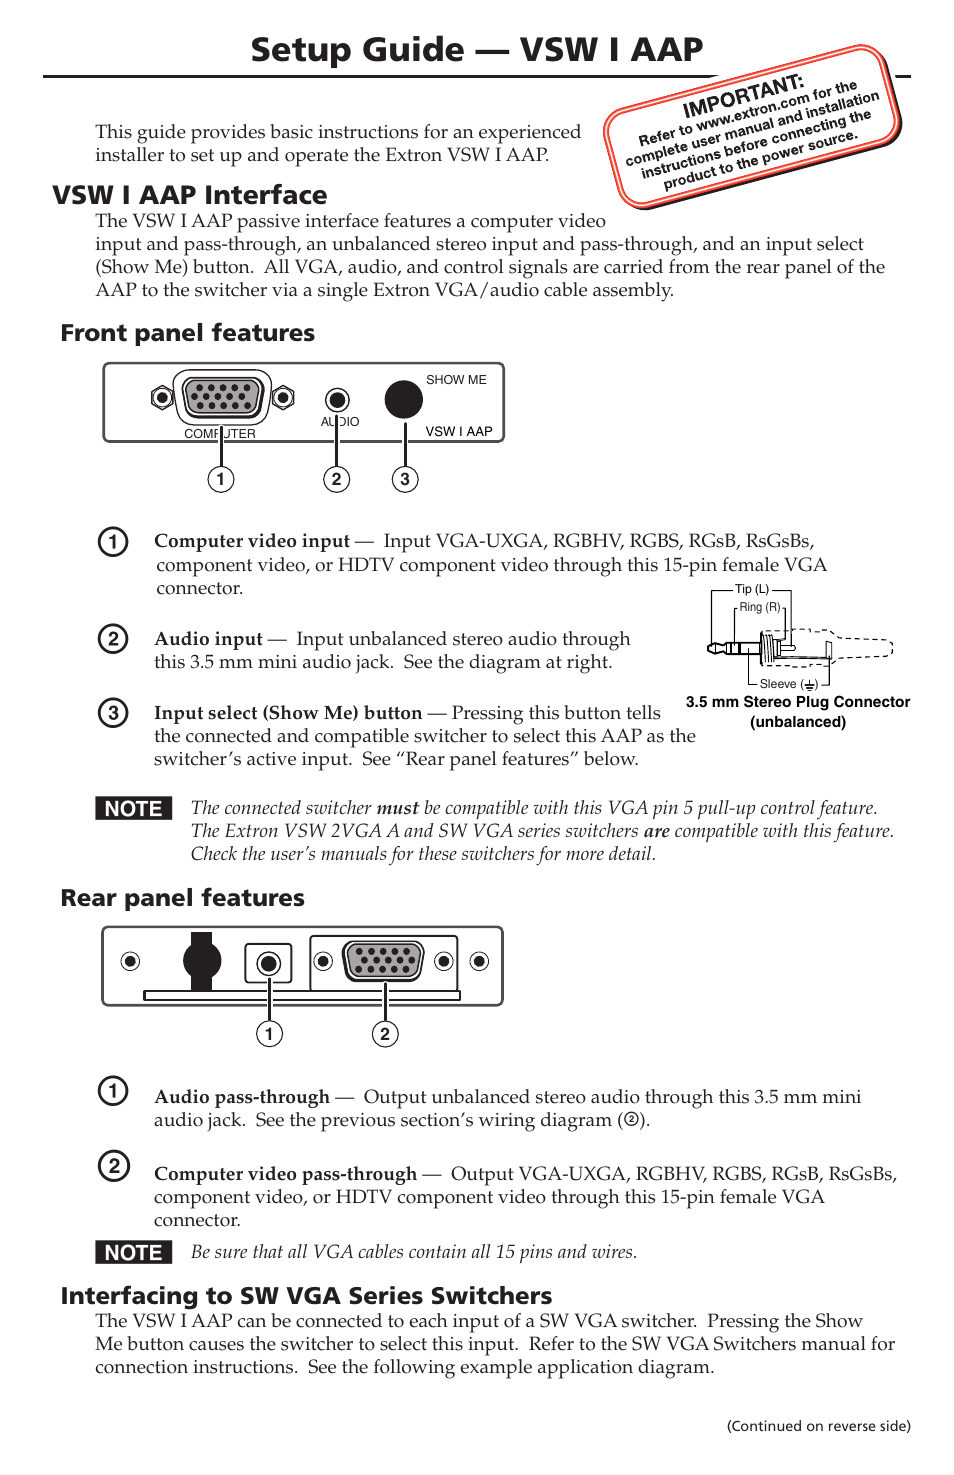 Extron Electronics Vsw I Aap Setup Guide User Manual 2 Pages Hdtv Wiring Diagram